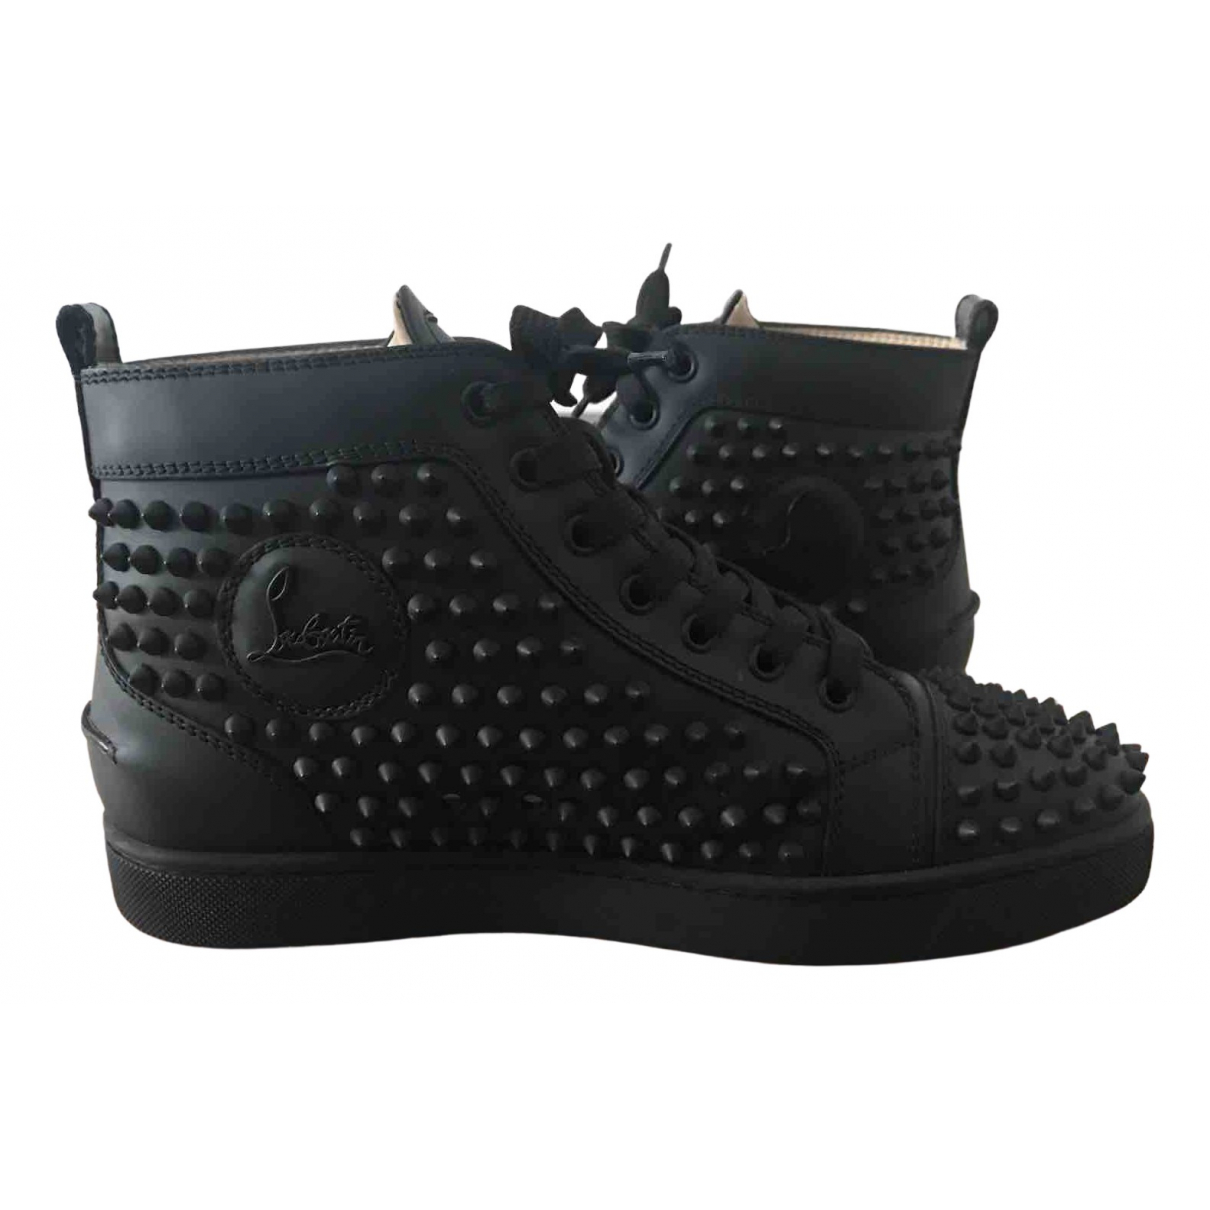 Christian Louboutin Louis Sneakers in  Schwarz Leder